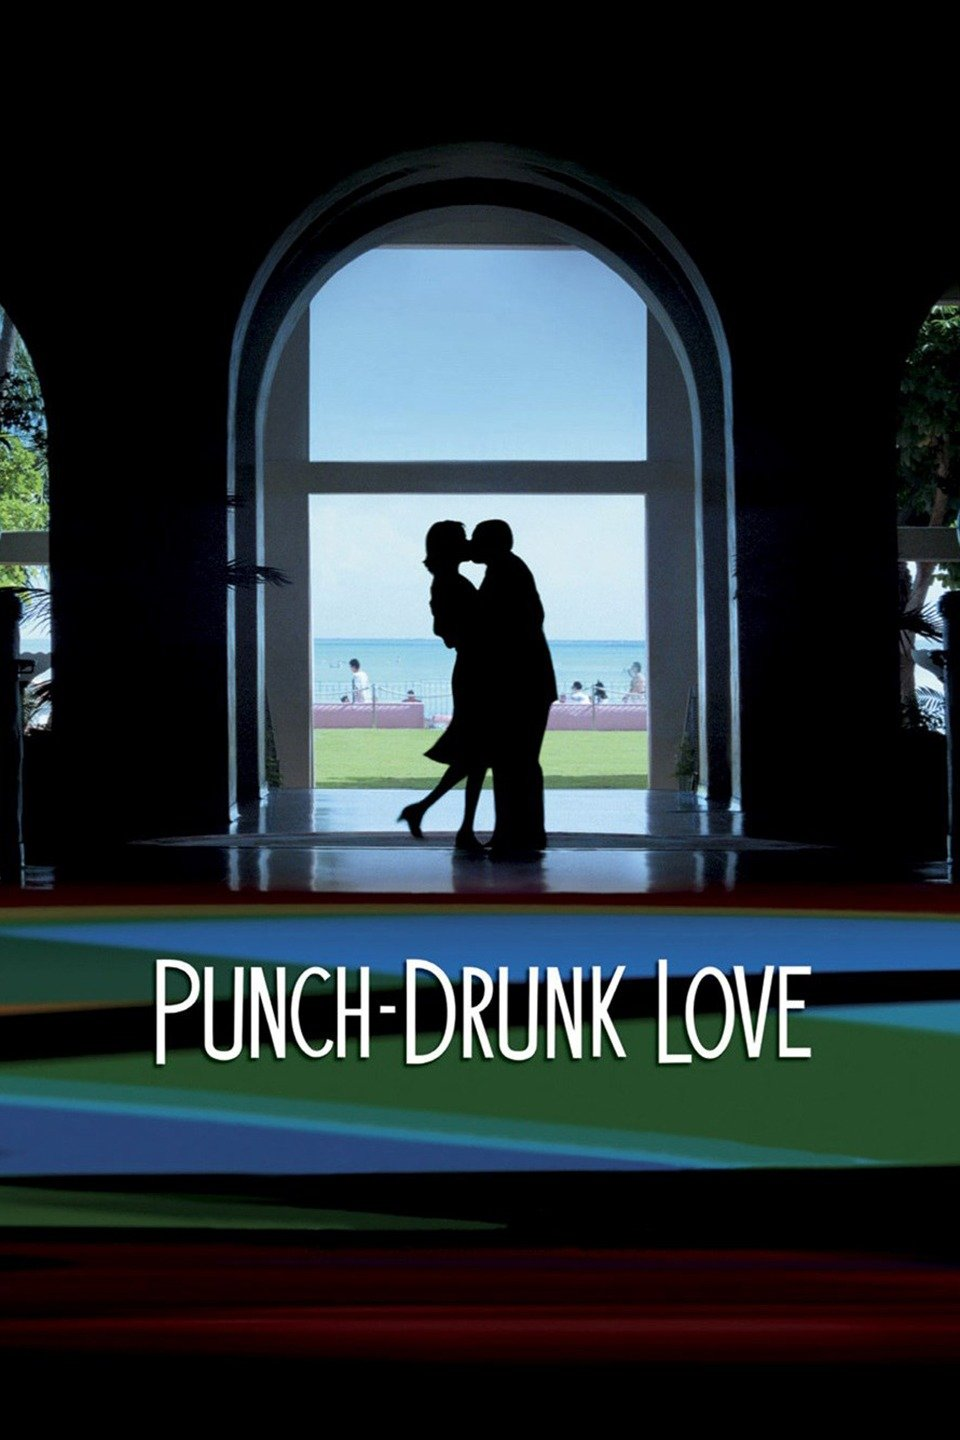 Punch-Drunk Love - Directed by: Paul Thomas AndersonStarring: Adam Sandler, Emily Watson, Phillip Seymour Hoffman, Luis GuzmanRated: R for Strong Language Including a Scene of Sexual DialogueRunning Time: 1h 35mTMM Score: 5 StarsSTRENGTHS: Direction, Cinematography, Writing, PerformancesWEAKNESSES: -